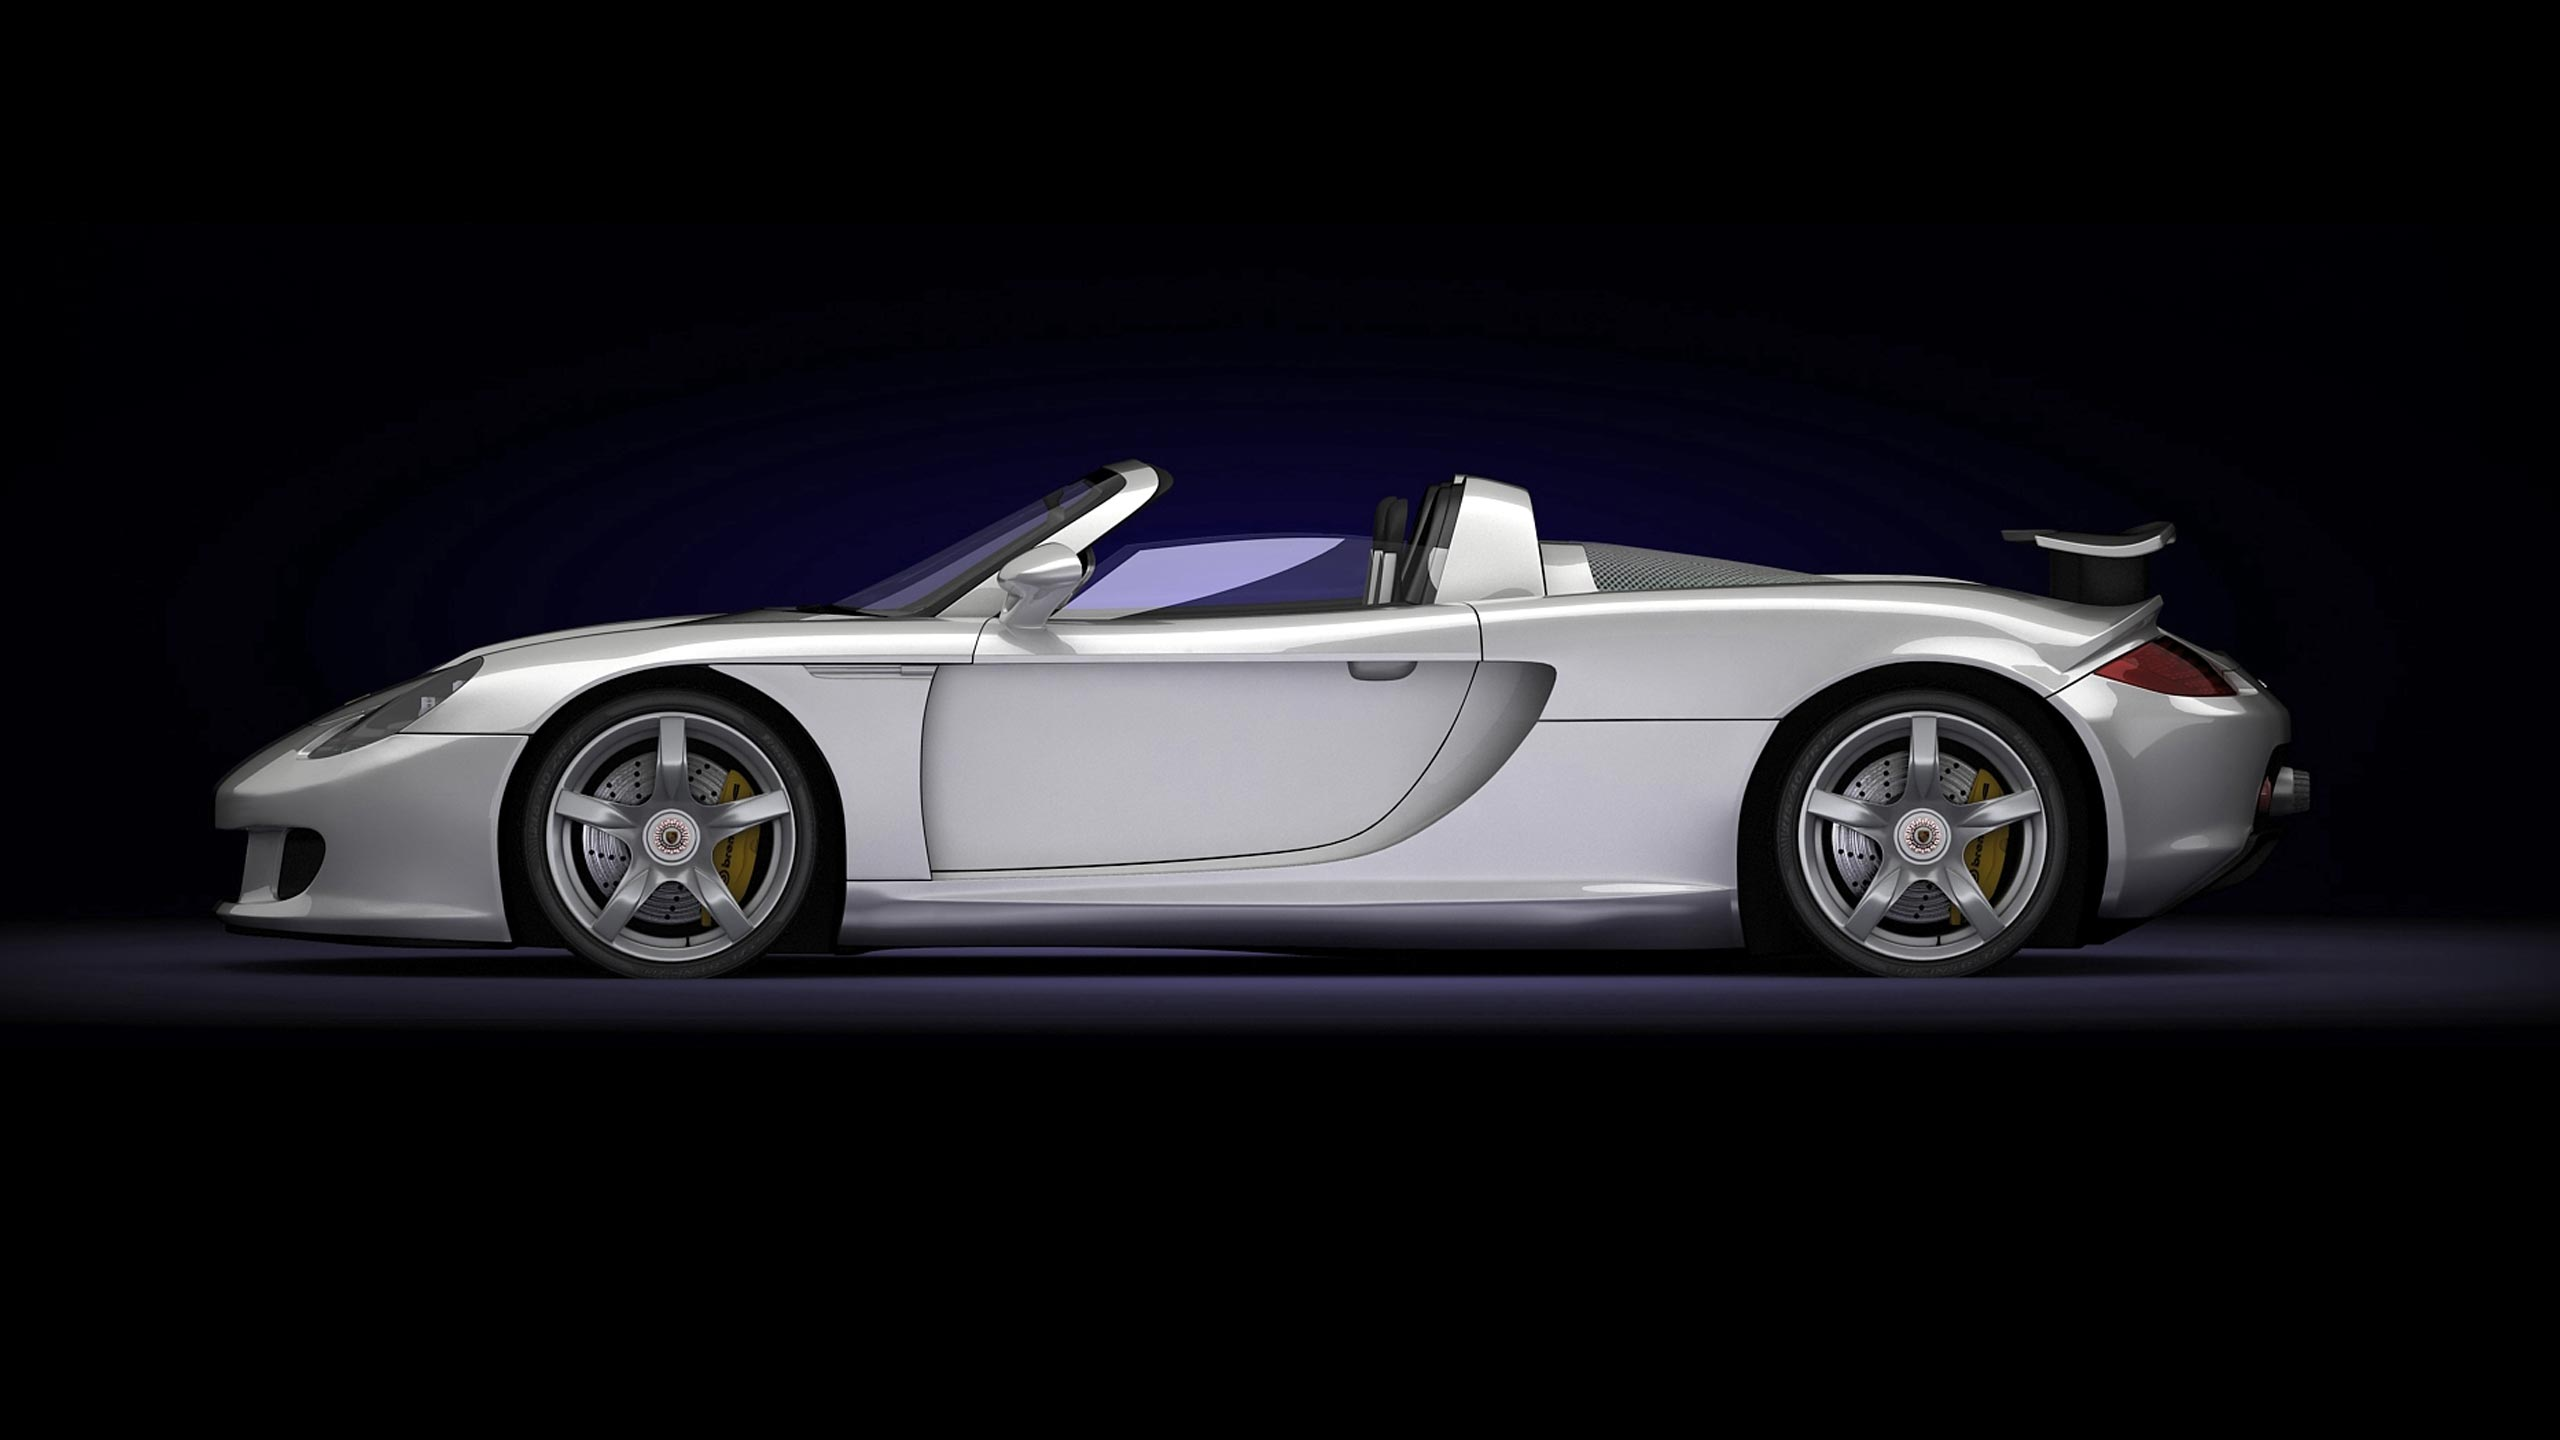 3d-product-visualisation-London-Porsche-01